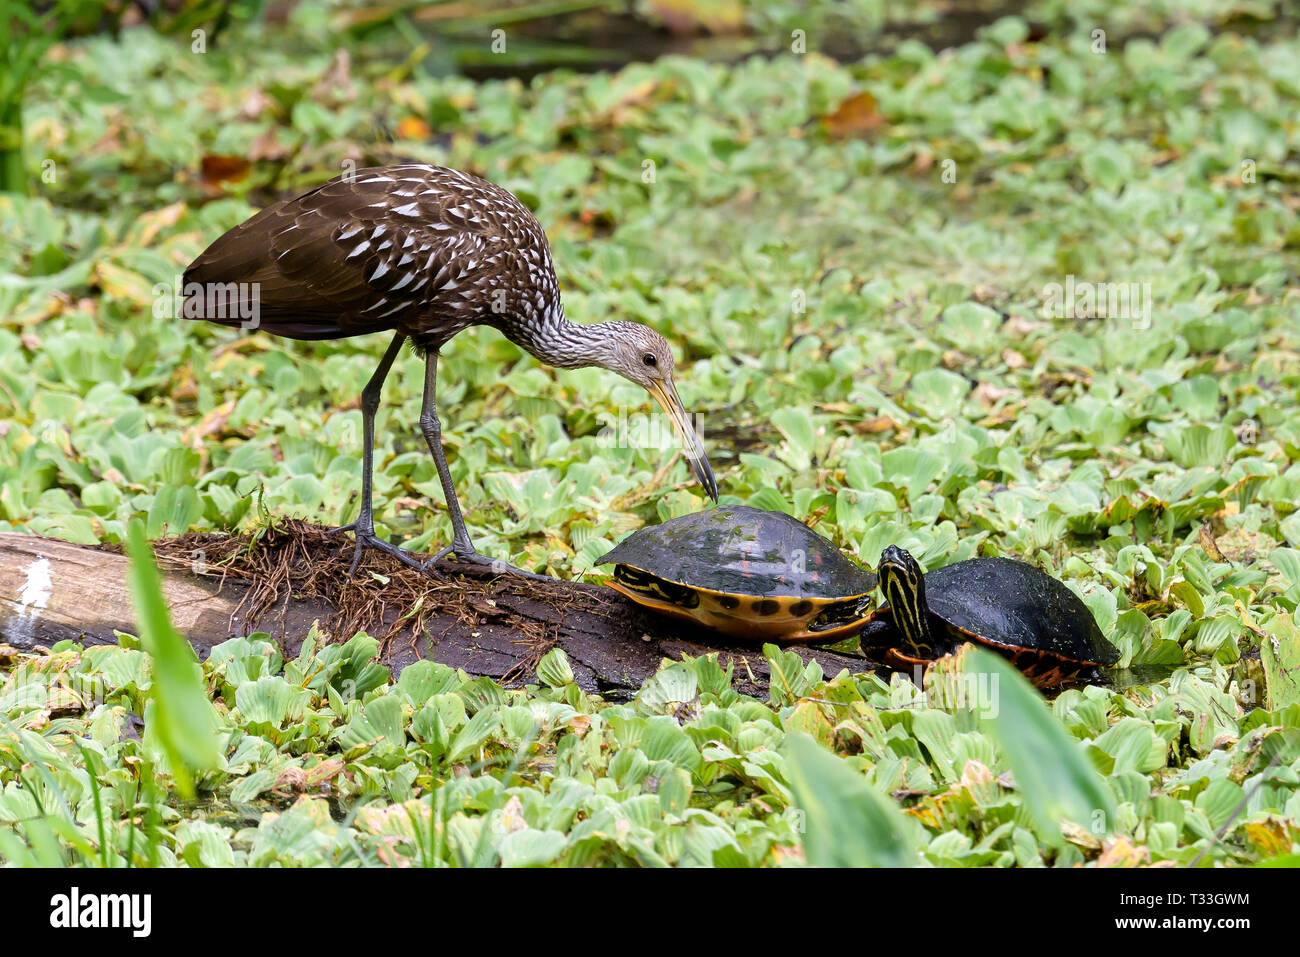 A limpkin (Aramus guarauna) and Florida red-bellied cooters (Pseudemys nelsoni) on a log surrounded by water cabbage in Corkscrew Swamp Sanctuary, Flo Stock Photo